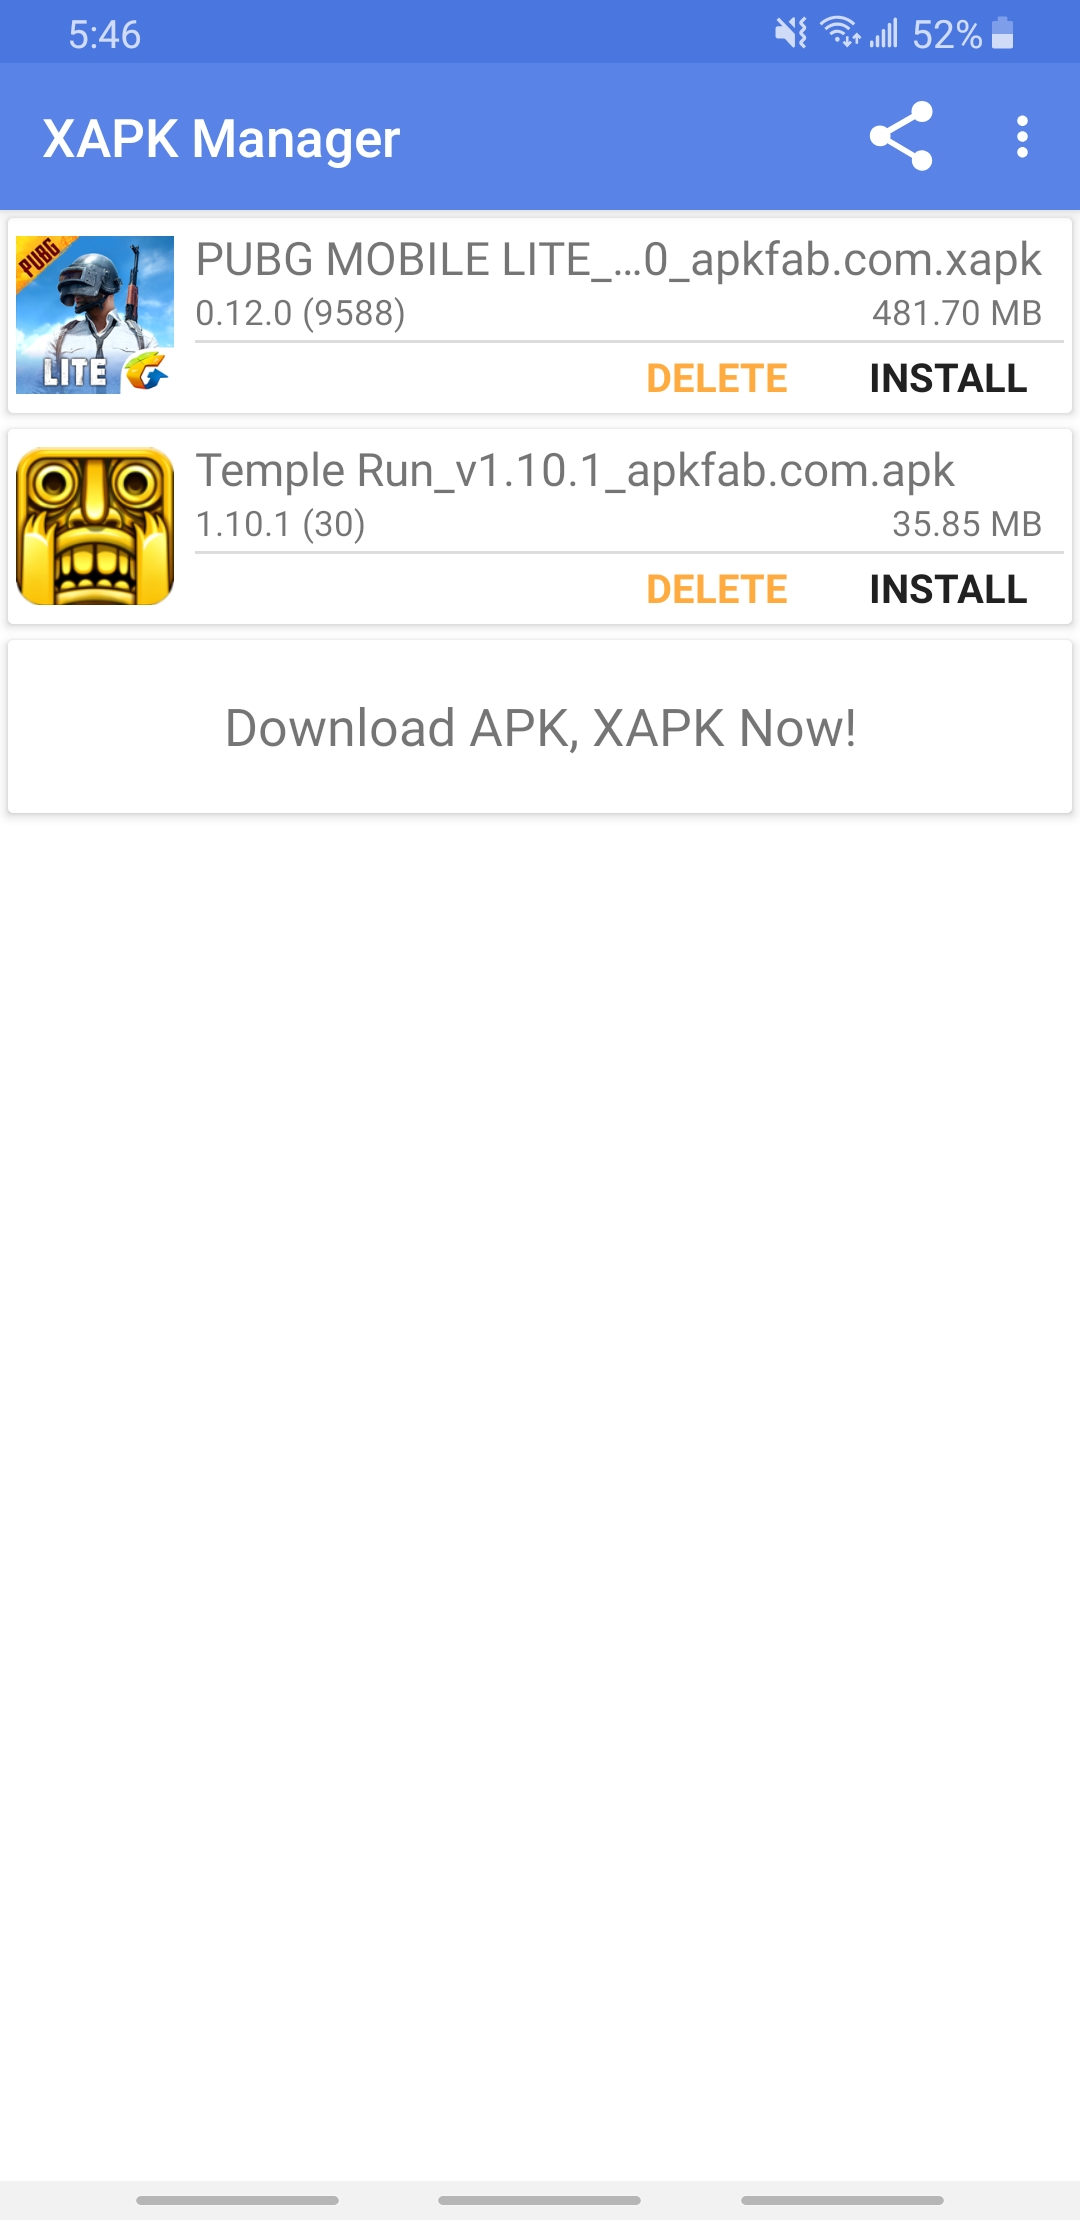 XAPK Manager APK for Android – Download XAPK Manager 2 1 0